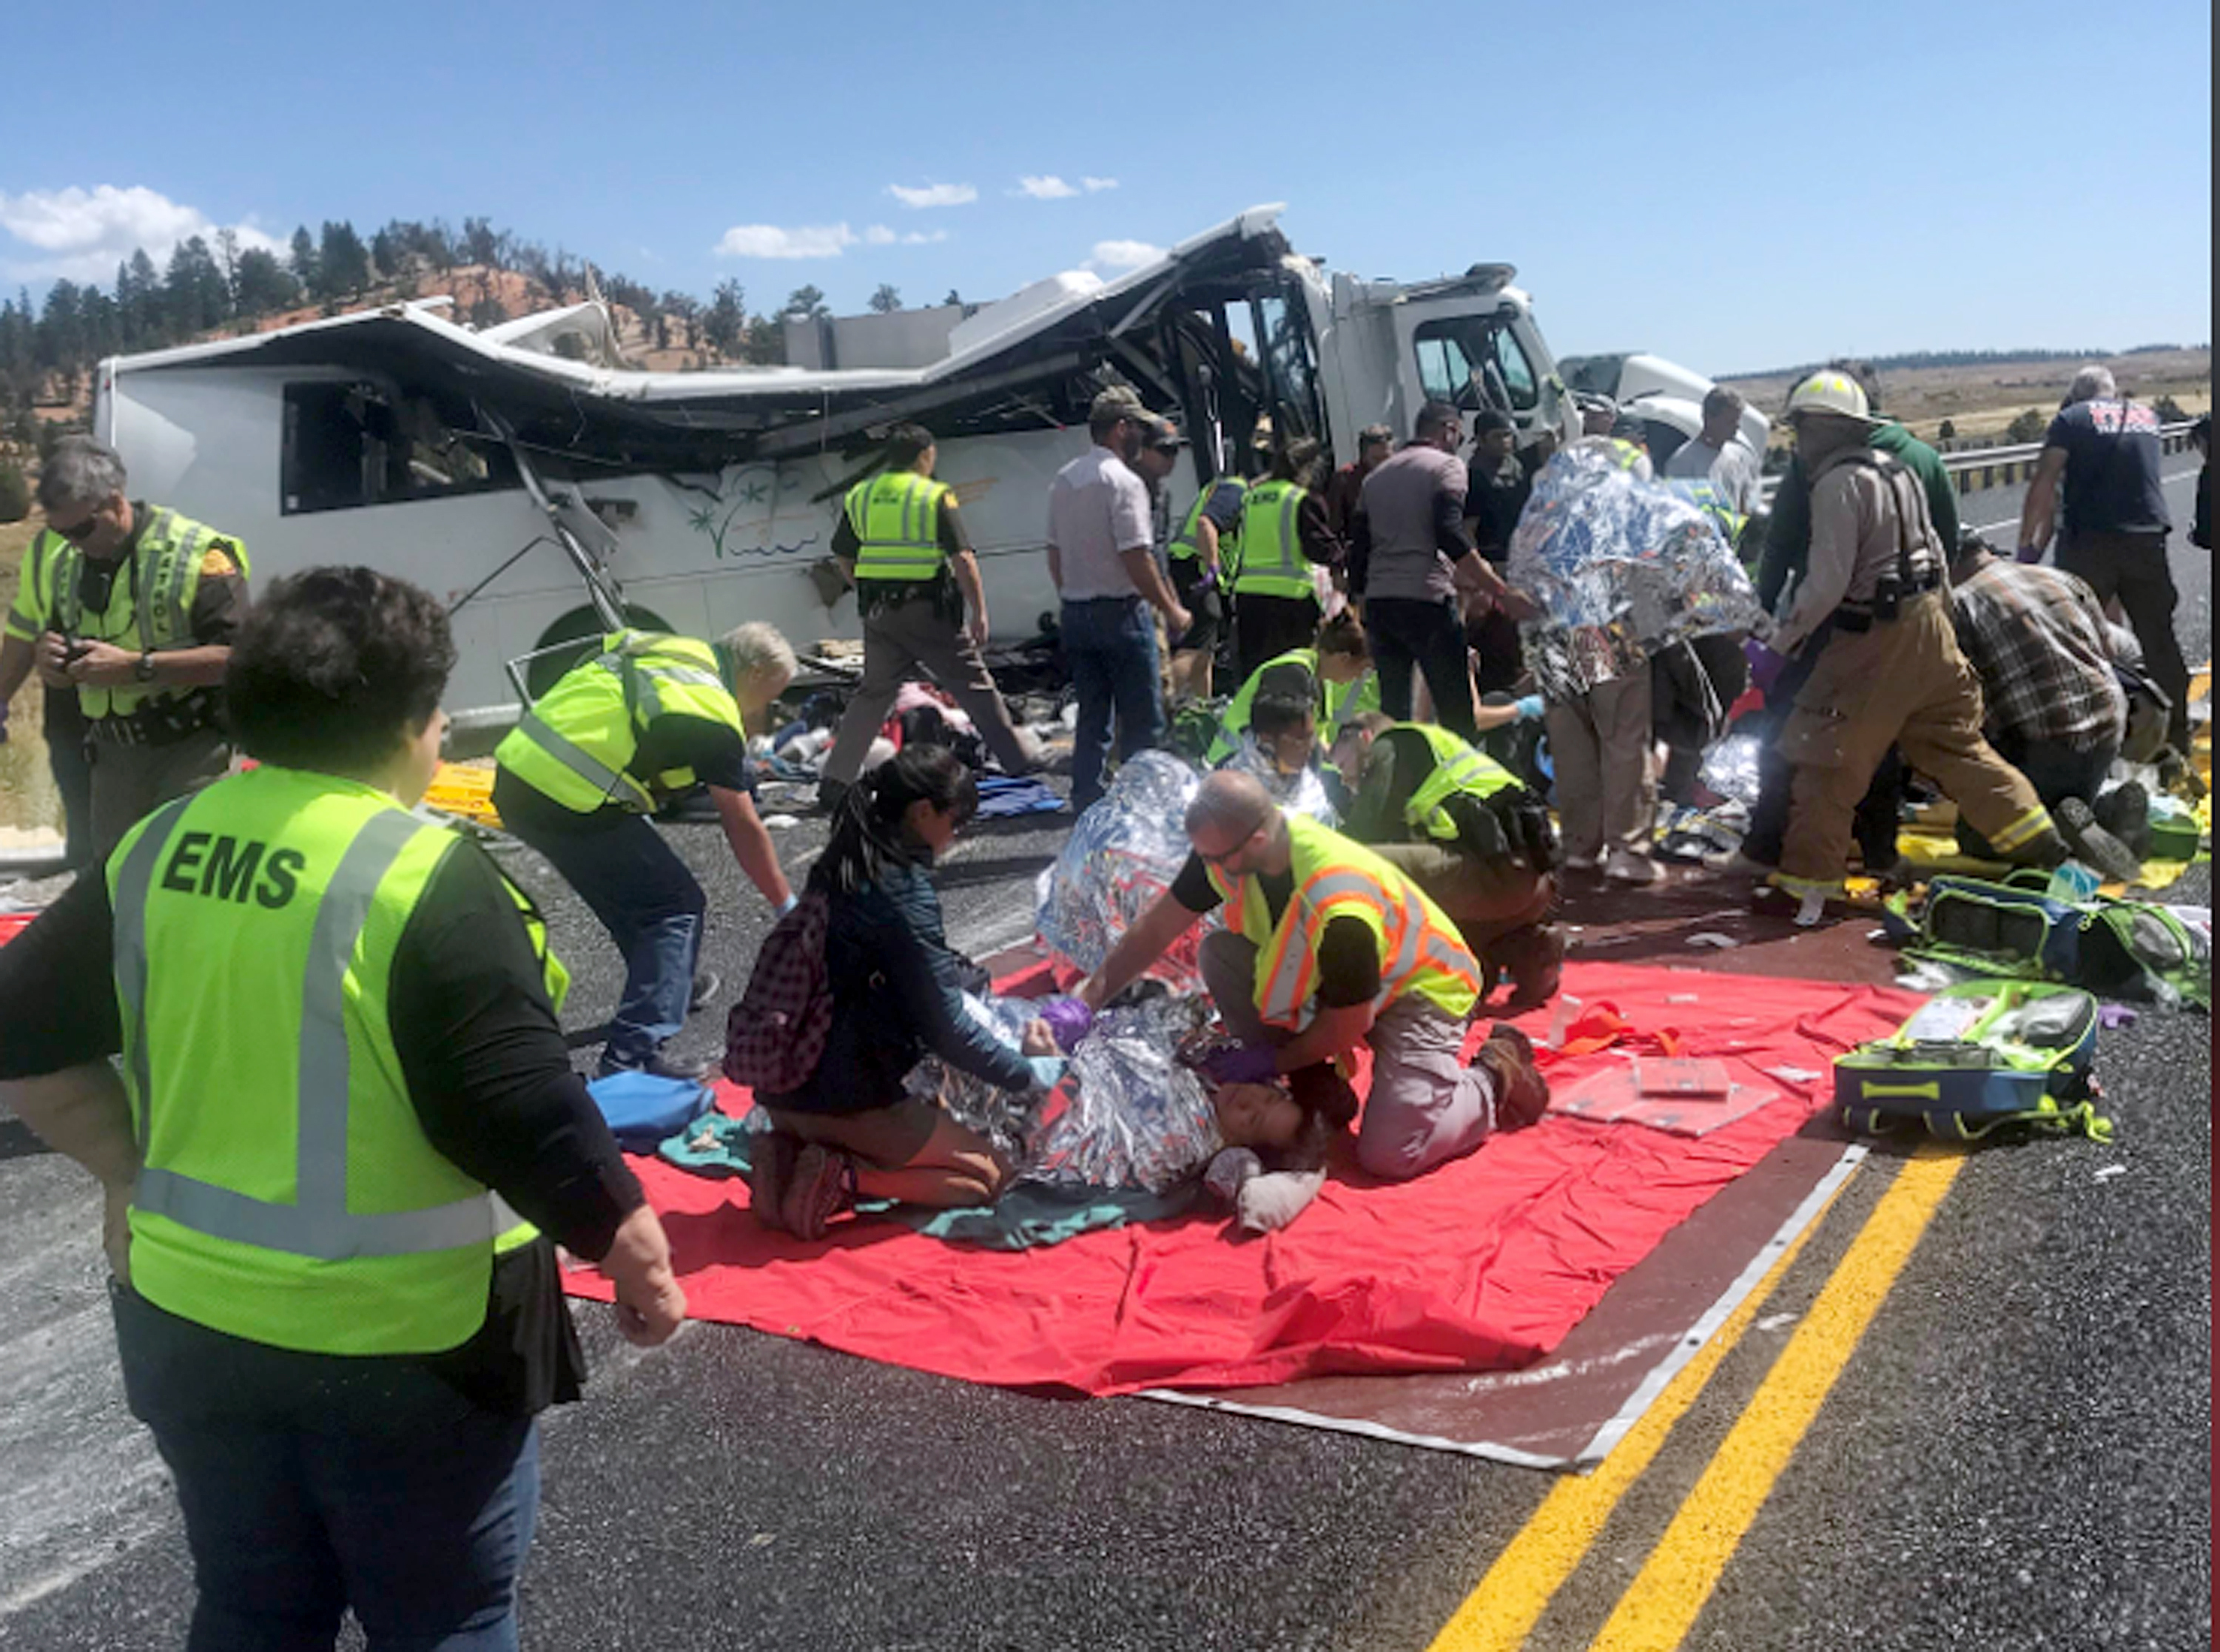 Bryce Canyon Bus Crash Four Dead After Vehicle Goes Off Road Outside Utah National Park Authorities Say The Washington Post